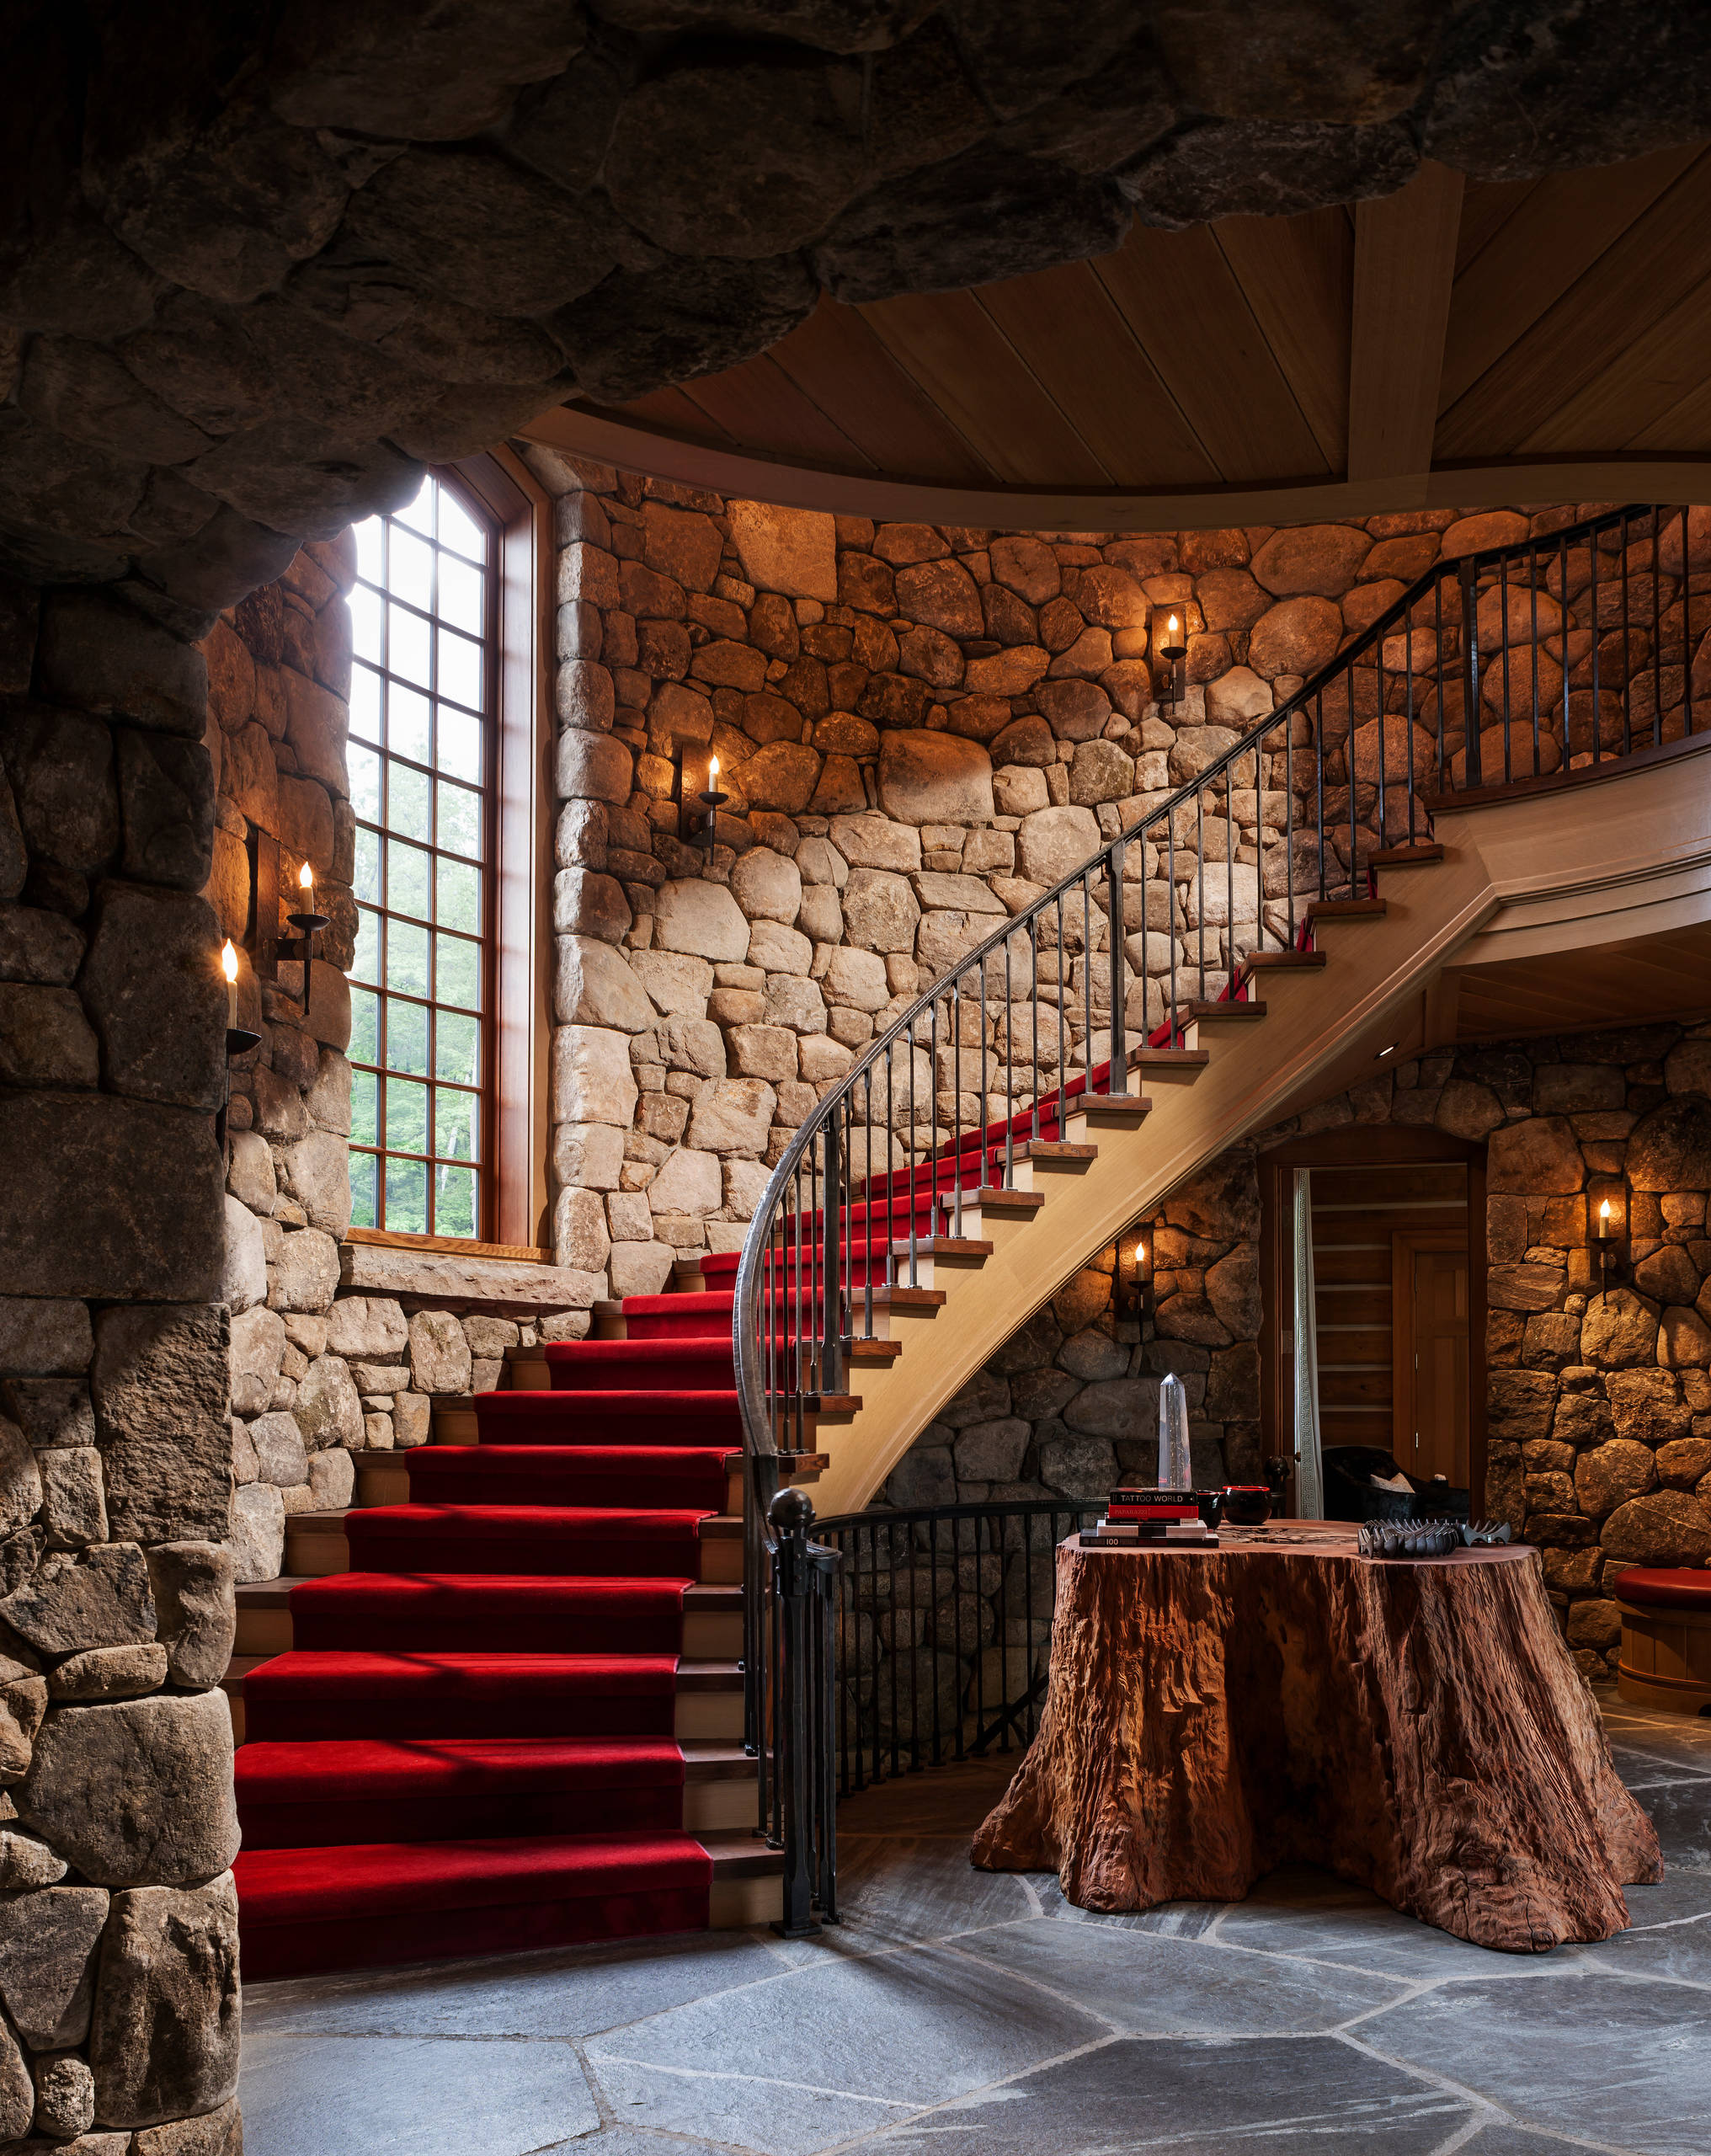 15 Enchanting Rustic Staircase Designs That Youre Going To Fall